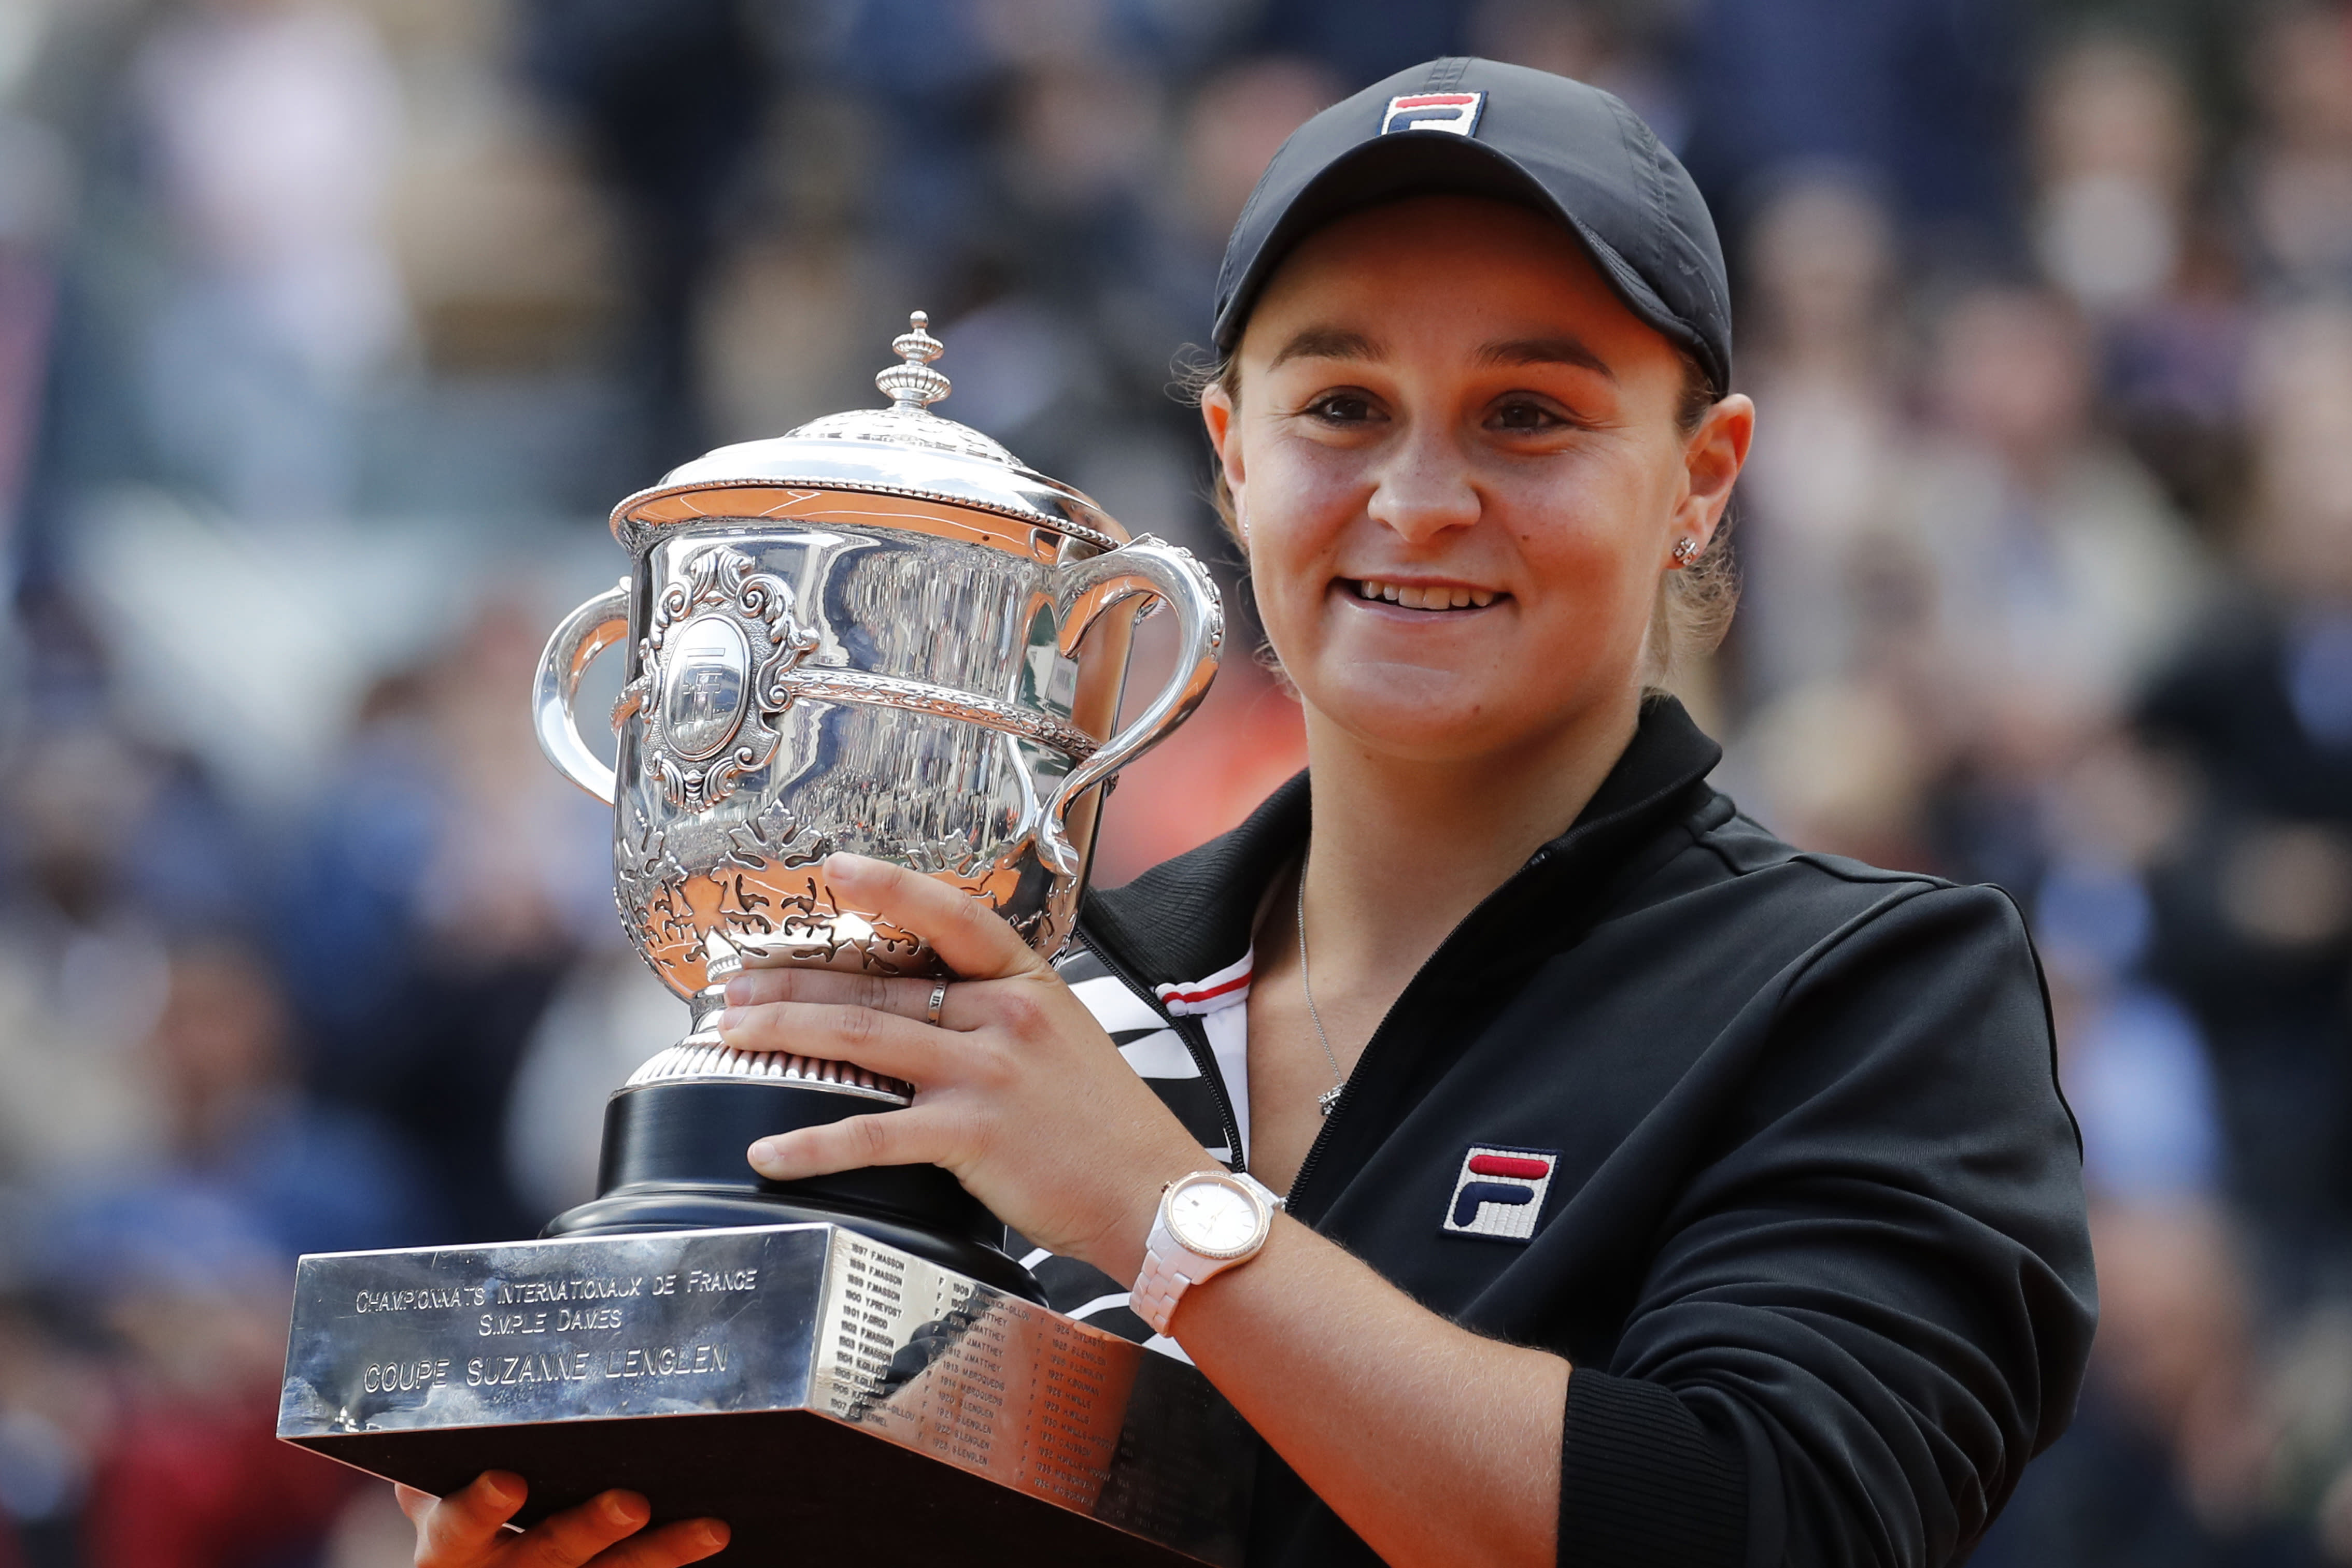 FILE - In this June 8, 2019, file photo, Australia's Ash Barty holds the trophy as she celebrates winning her women's final match of the French Open tennis tournament against Marketa Vondrousova of the Czech Republic in two sets 6-1, 6-3, at the Roland Garros stadium in Paris. Top-ranked Ash Barty has withdrawn from the U.S. Open because she is not comfortable with traveling during the coronavirus pandemic. (AP Photo/Christophe Ena, File)